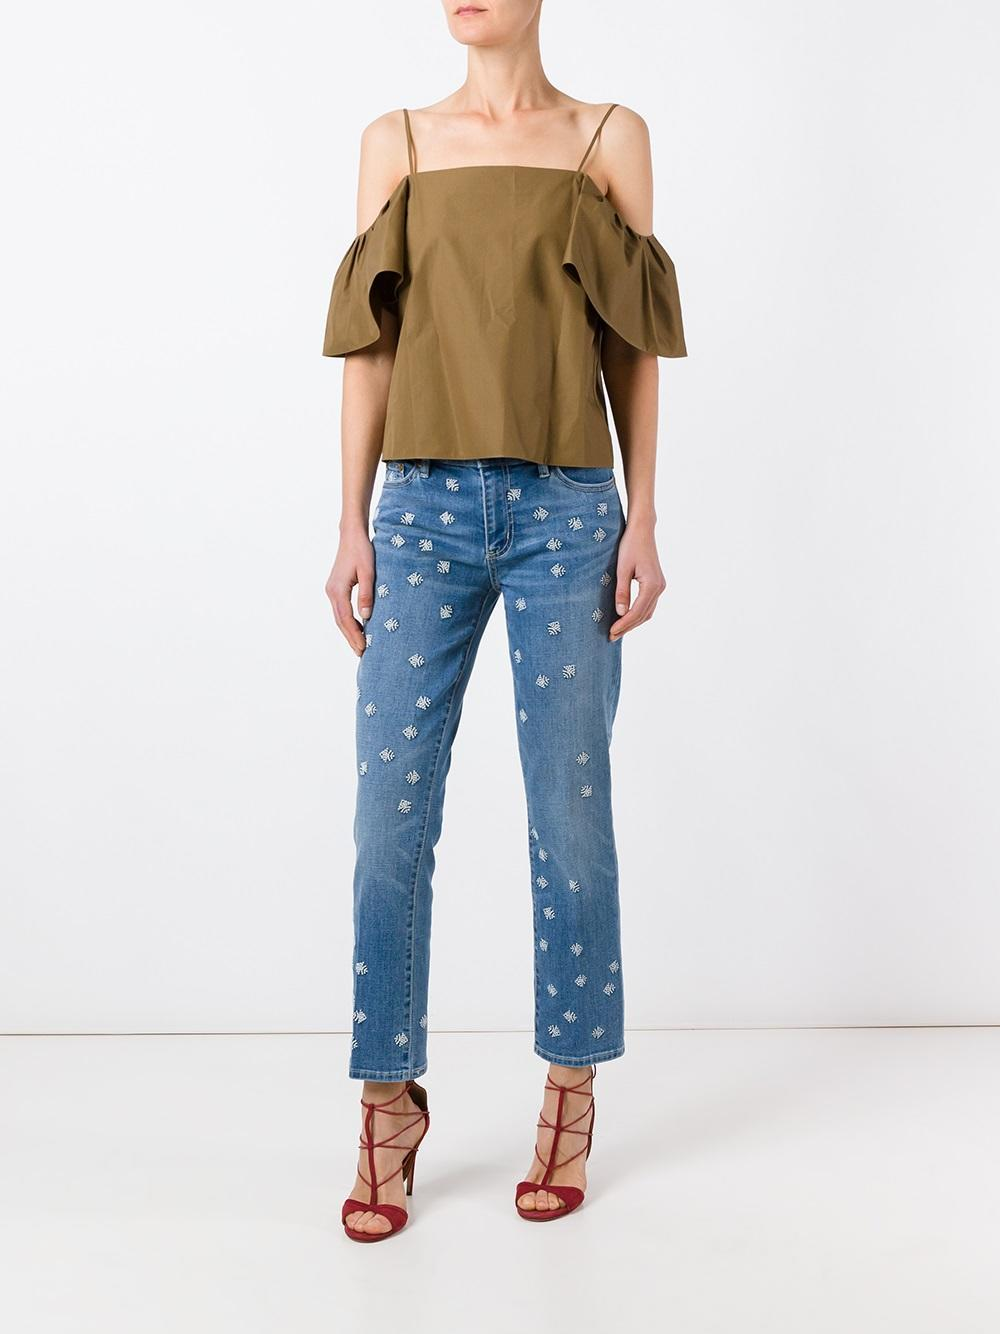 Lyst tory burch embroidered jeans in blue for Tory burch fashion island